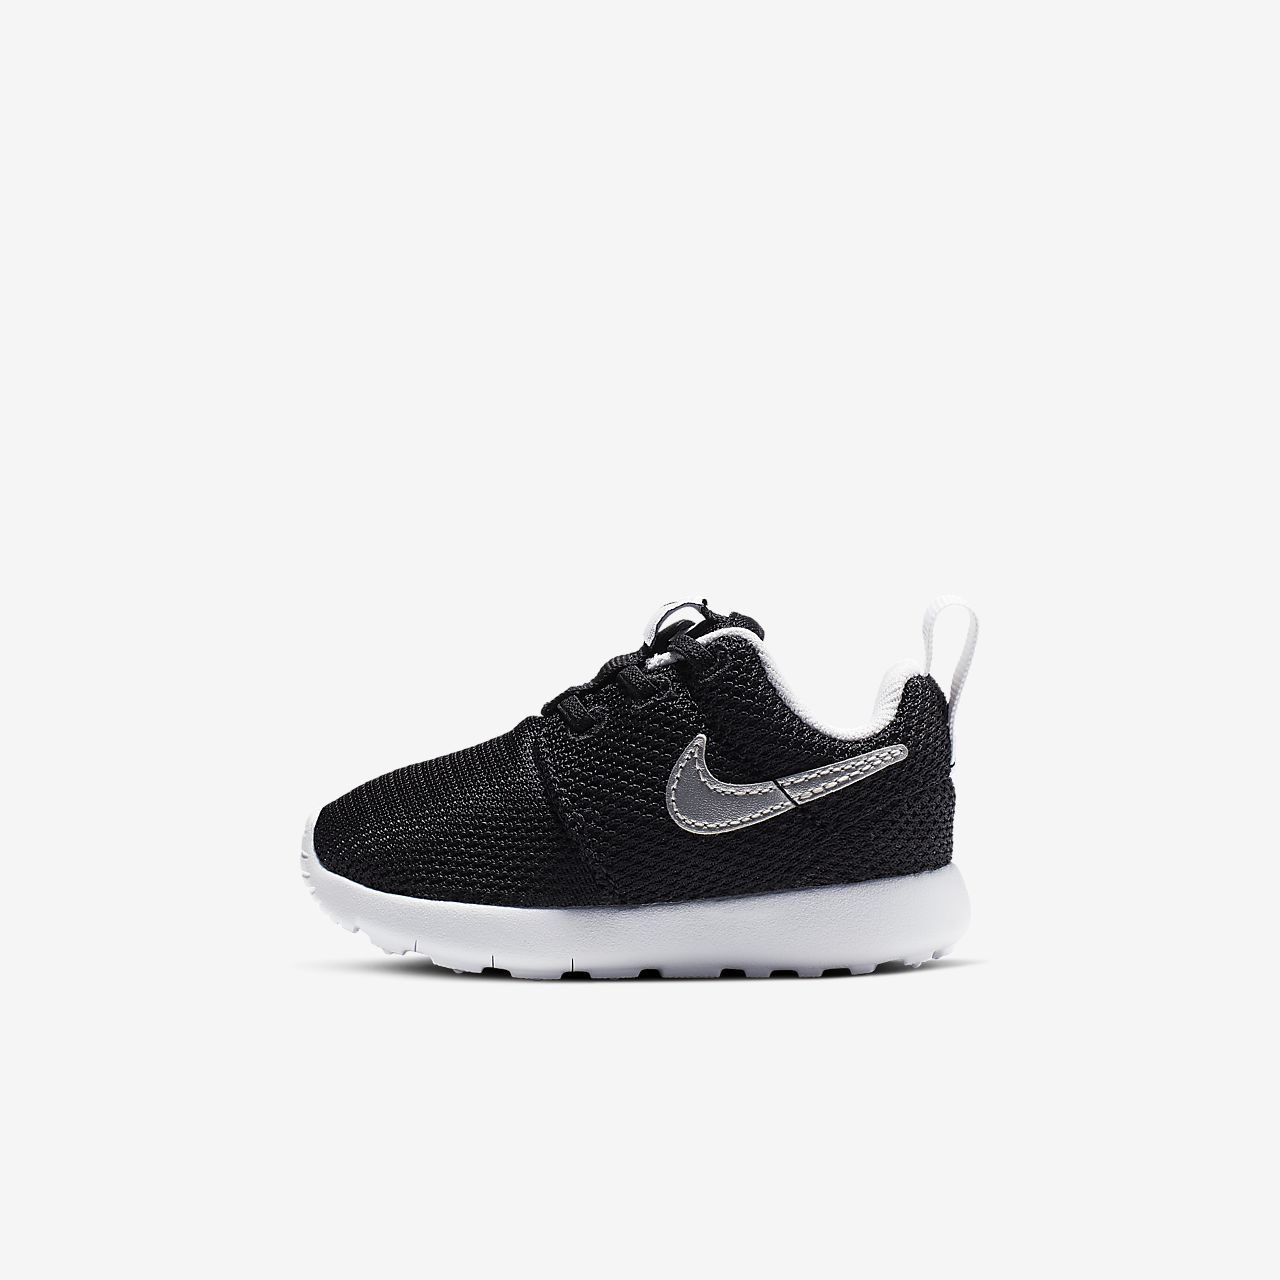 nike shoes roshes boustrophedon writing 908562